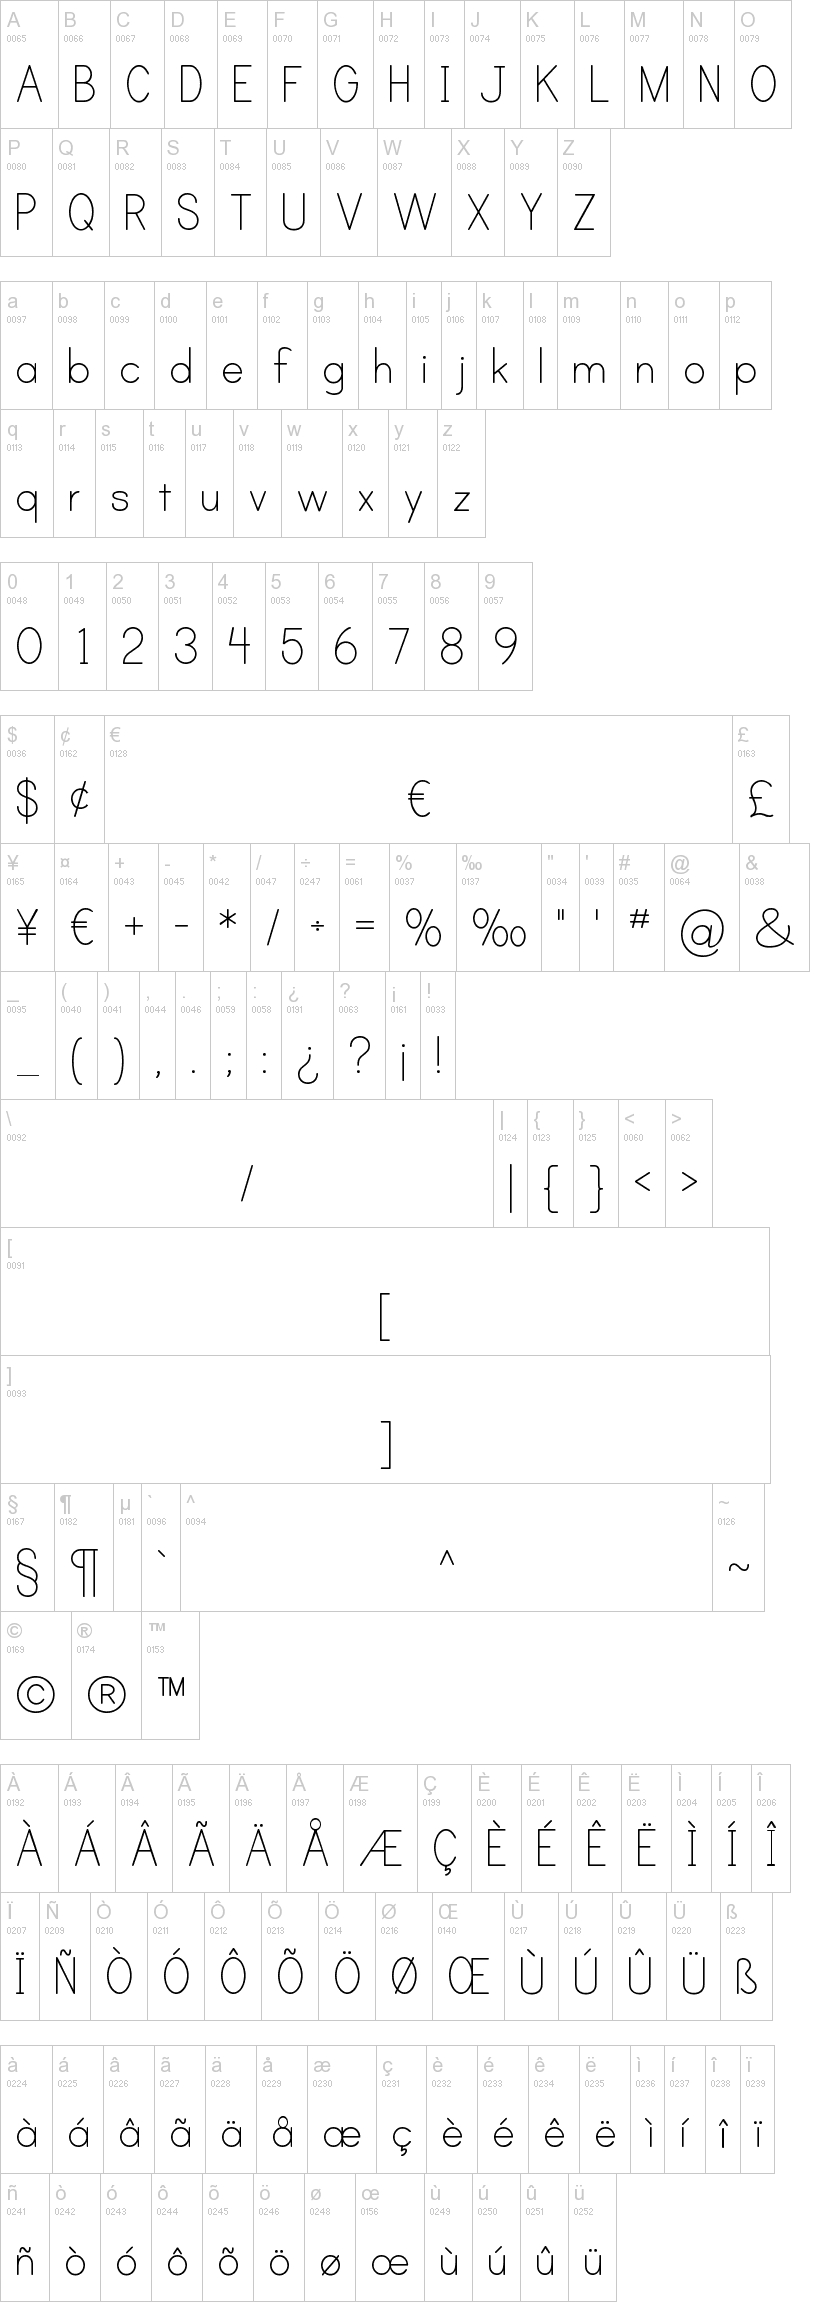 A Free Downloadable Font With Dashed Lines To Make Your Own